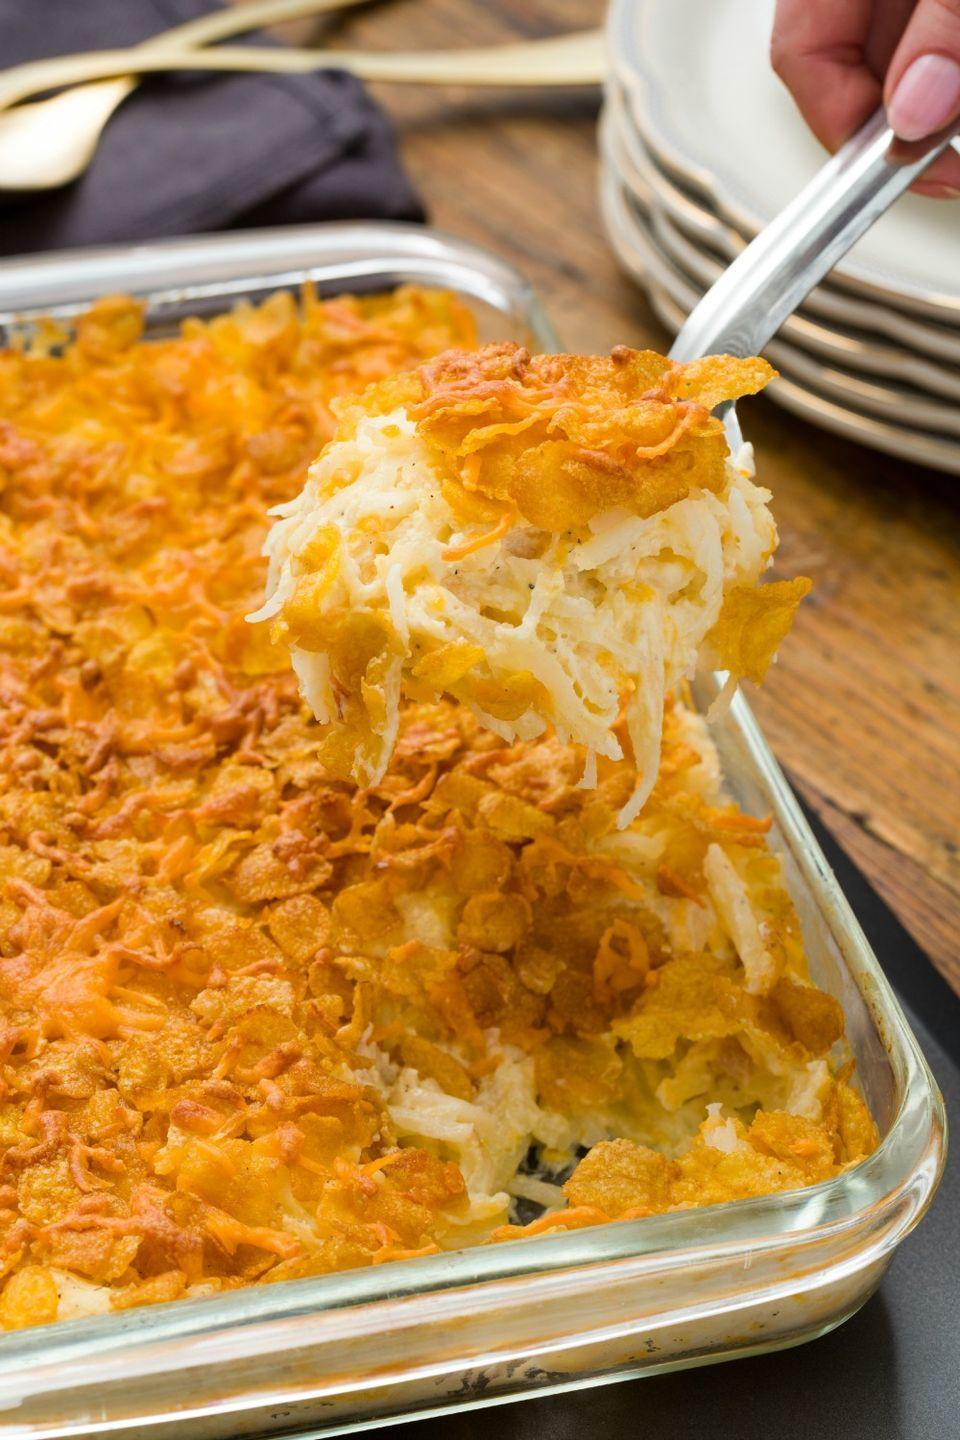 """<p>Crispy, creamy, and cheesy, these potatoes are always a winner in a holiday spread.</p><p>Get the recipe from <a href=""""https://www.delish.com/cooking/recipe-ideas/recipes/a44817/funeral-potatoes-recipe/"""" rel=""""nofollow noopener"""" target=""""_blank"""" data-ylk=""""slk:Delish"""" class=""""link rapid-noclick-resp"""">Delish</a>.</p>"""